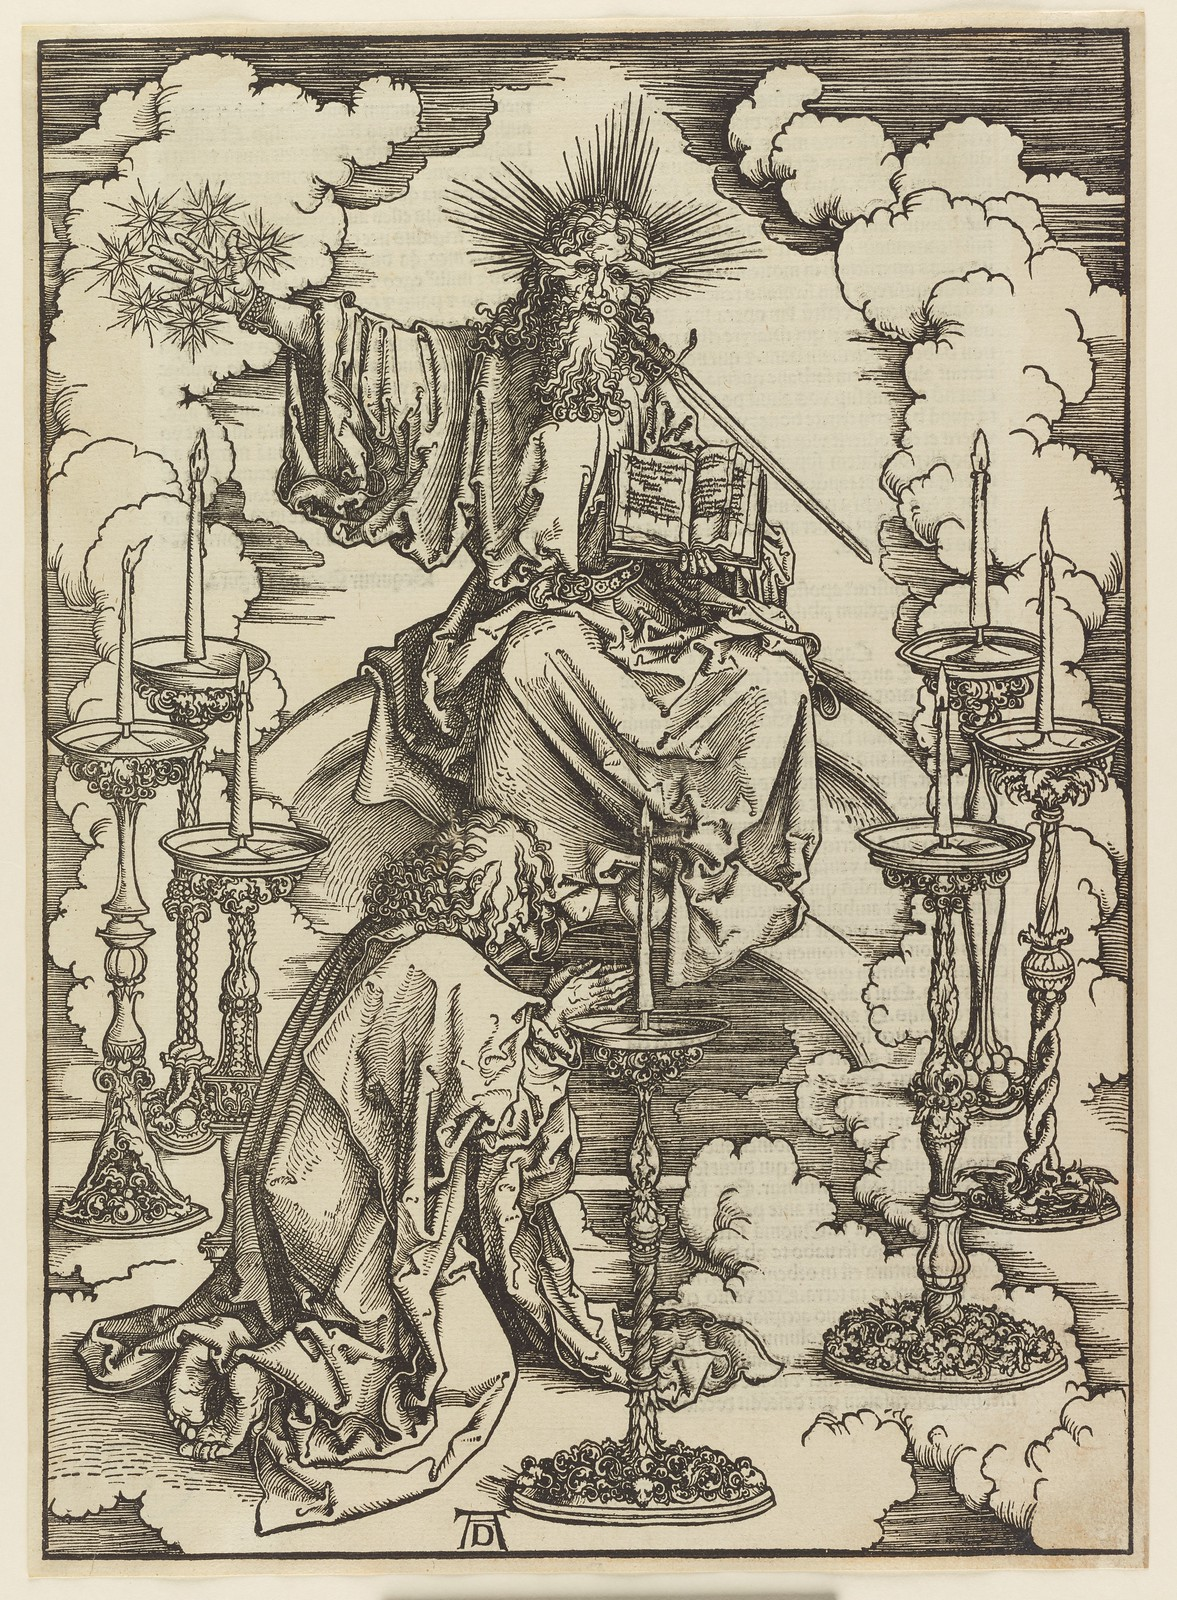 Albrecht Dürer - Vision of the seven candlesticks, Plate two of fifteen from the Latin edition of The Apocalypse series, printed 1511